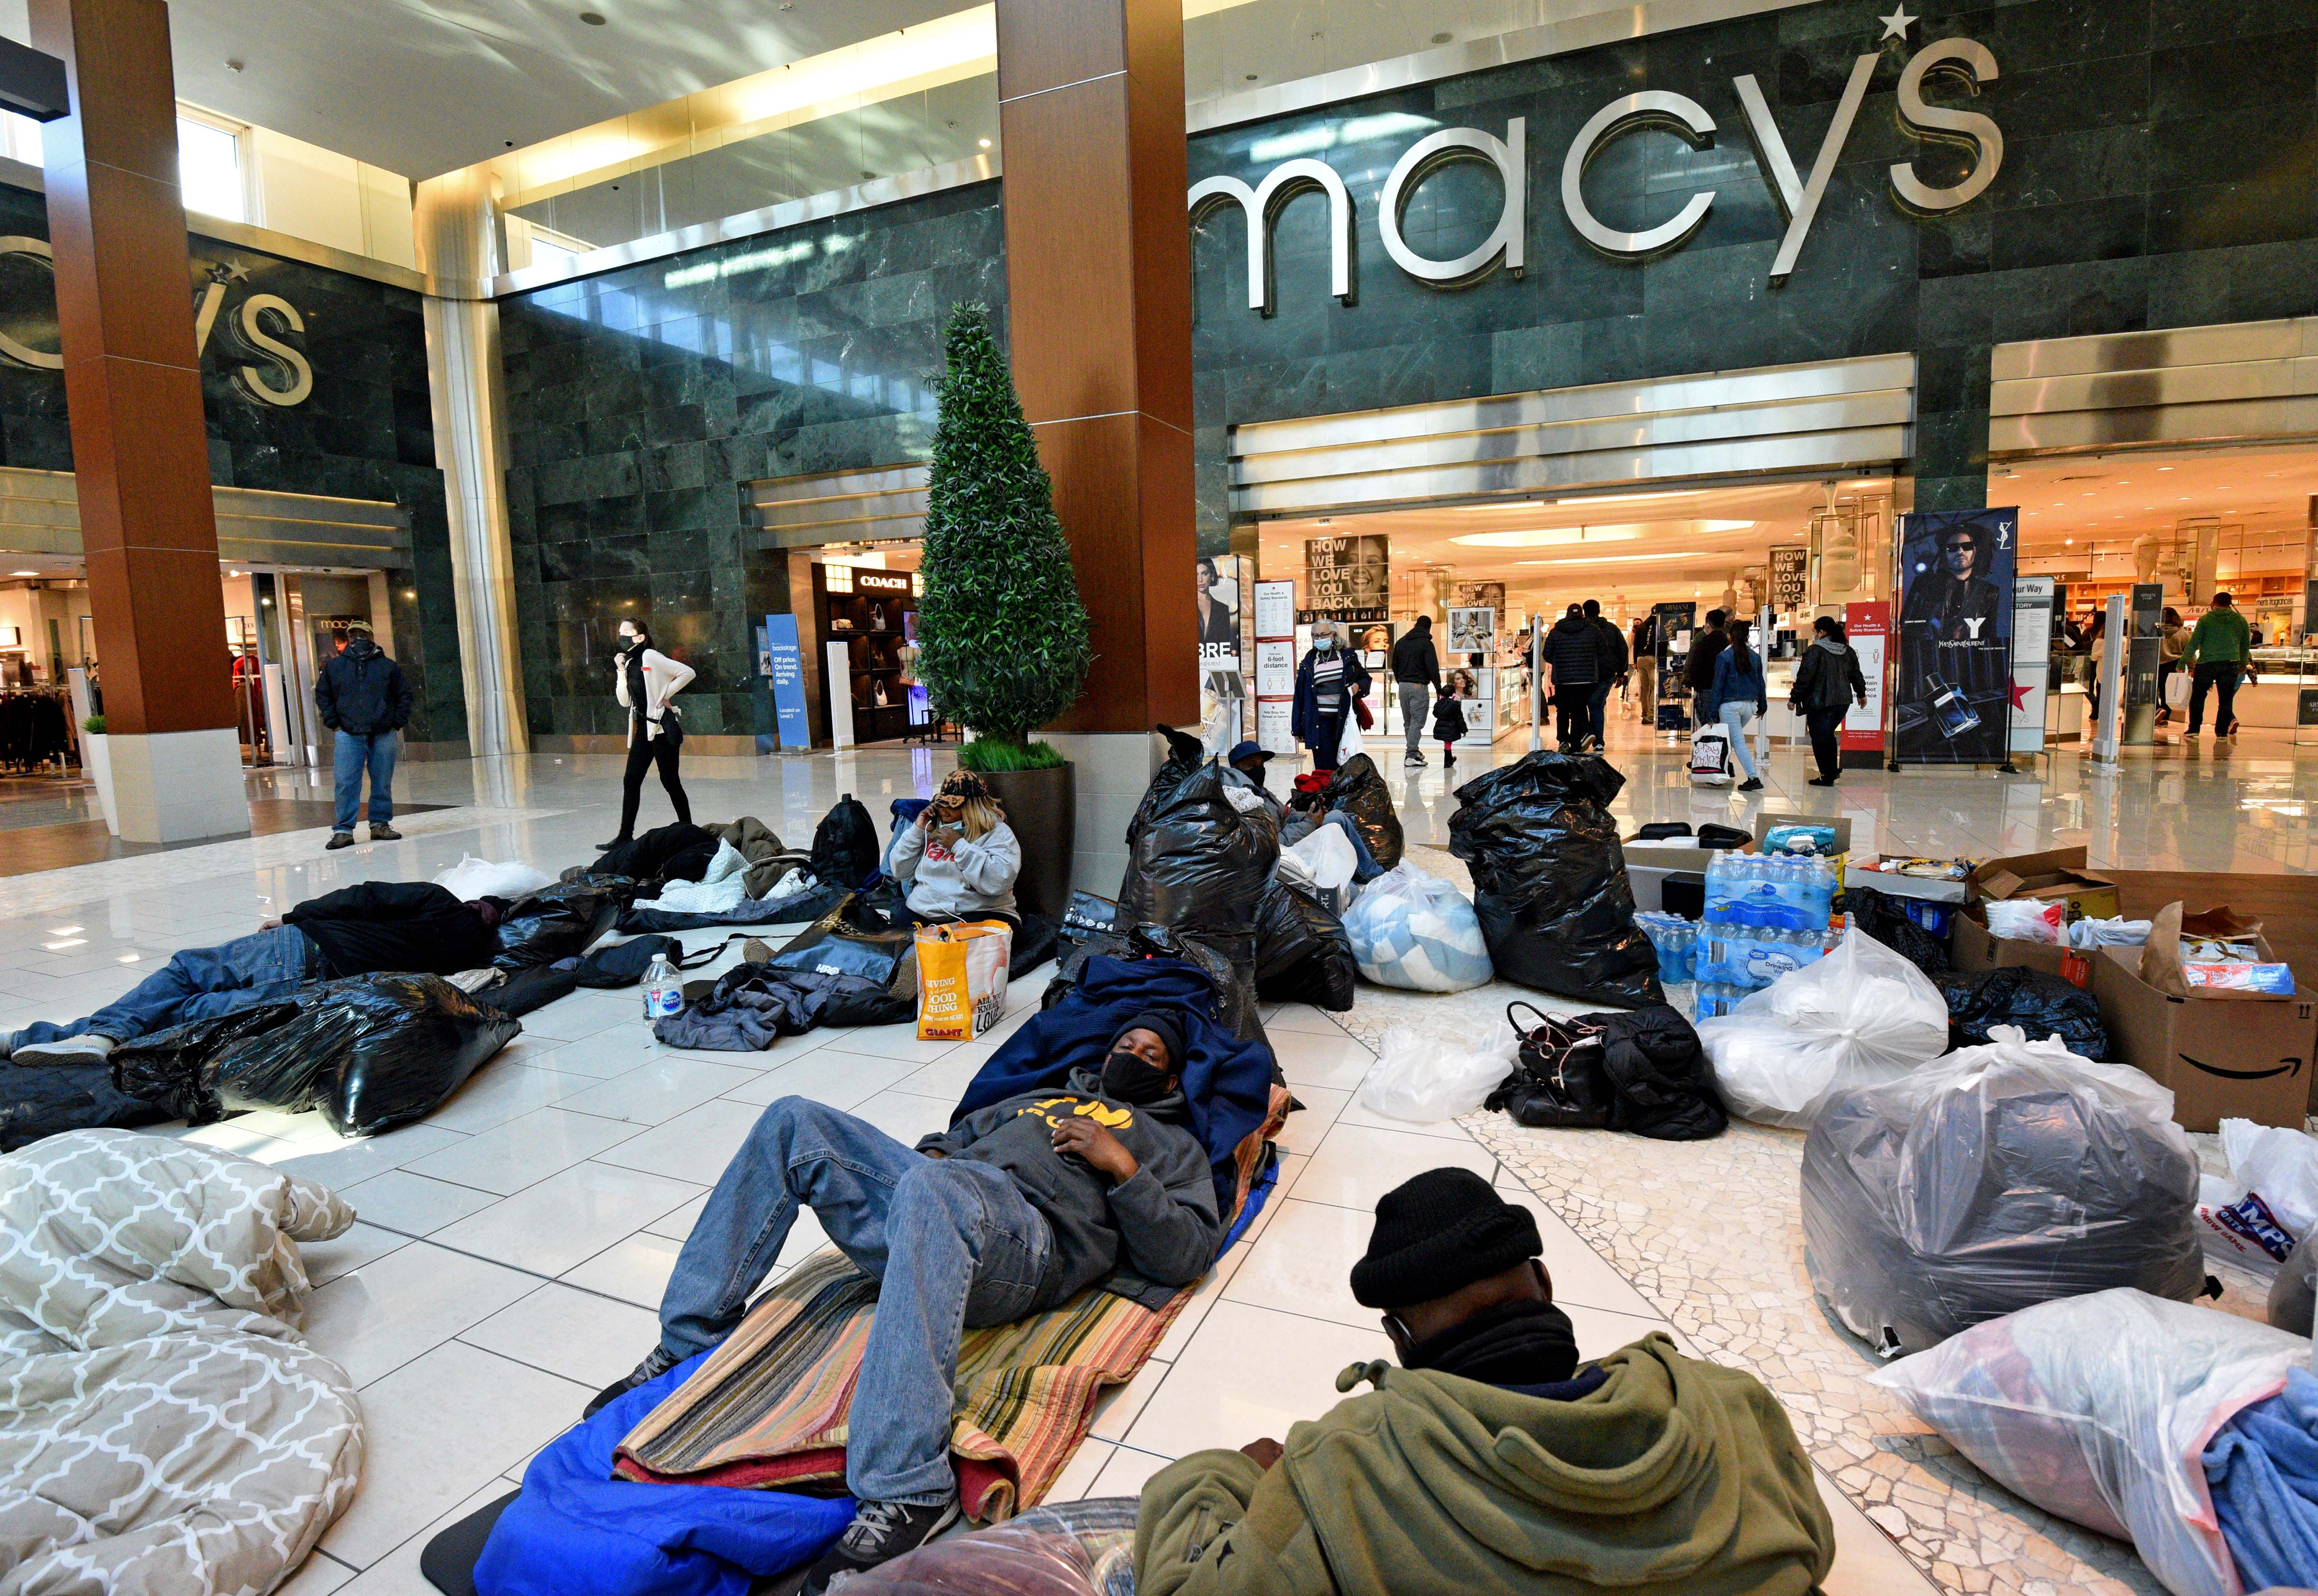 Why individuals experiencing homelessness staged a sit-in at the Cherry Hill Mall